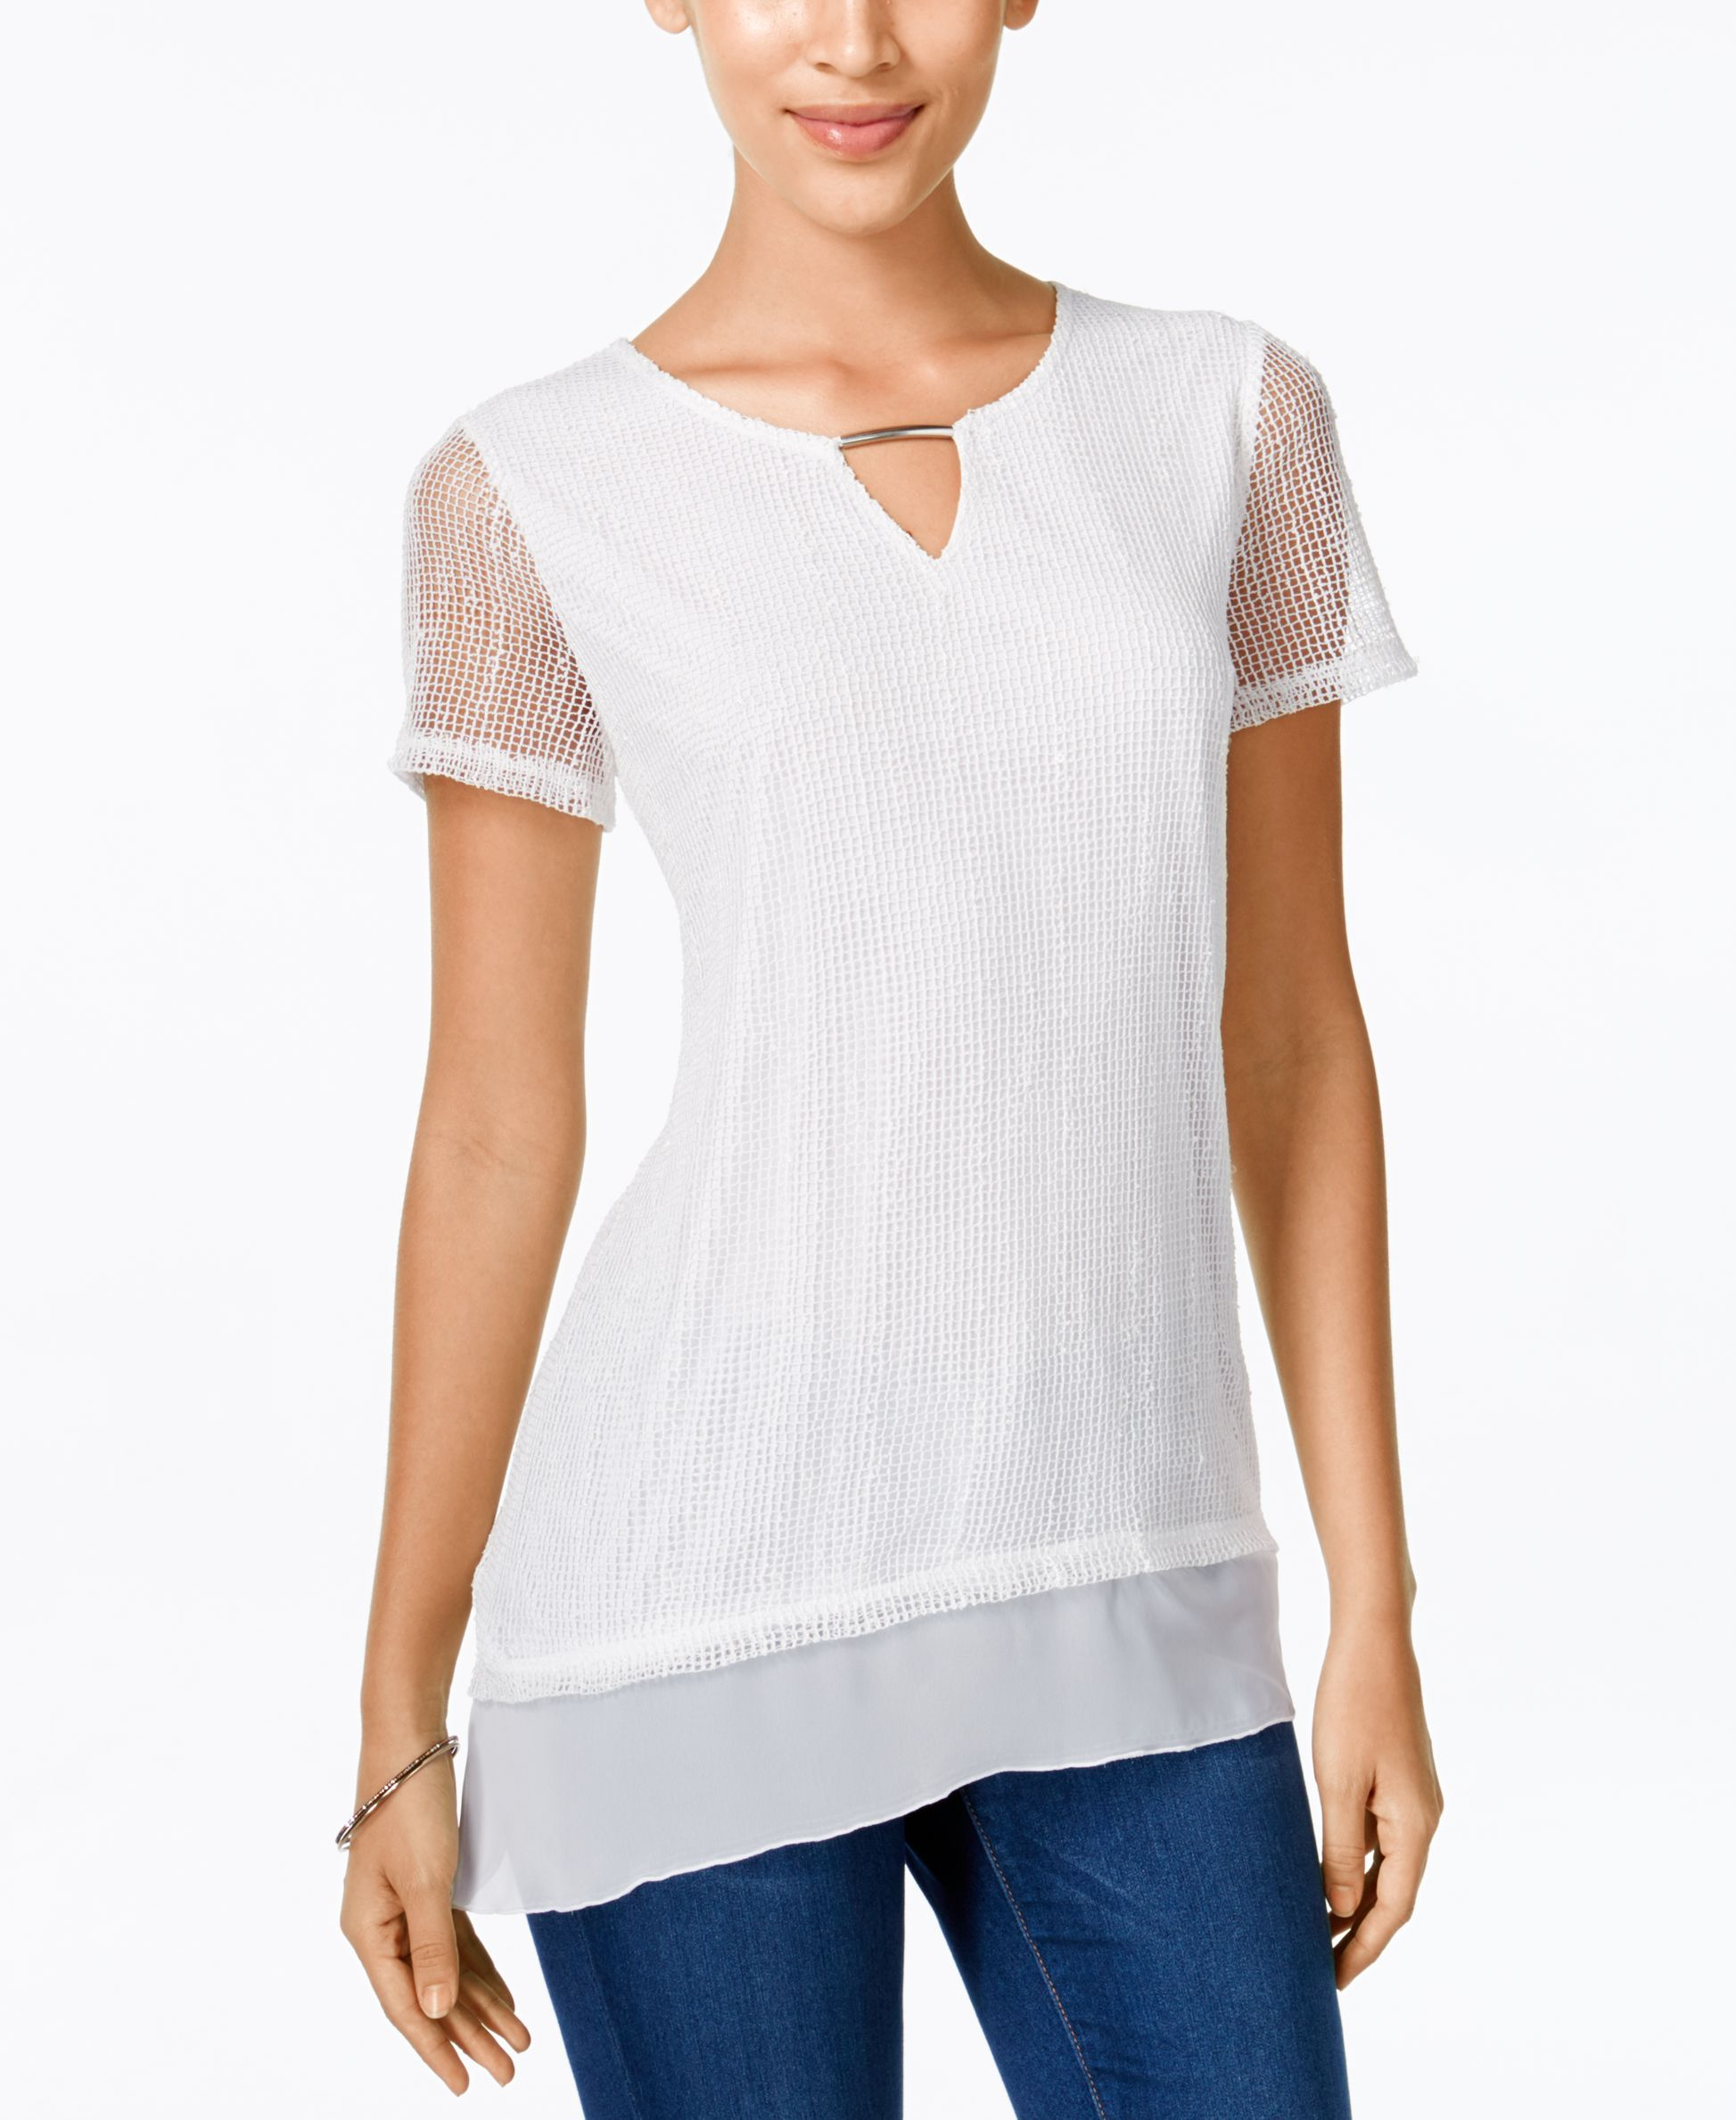 Jm Collection Plus Size Printed Keyhole Top, Only at Macy